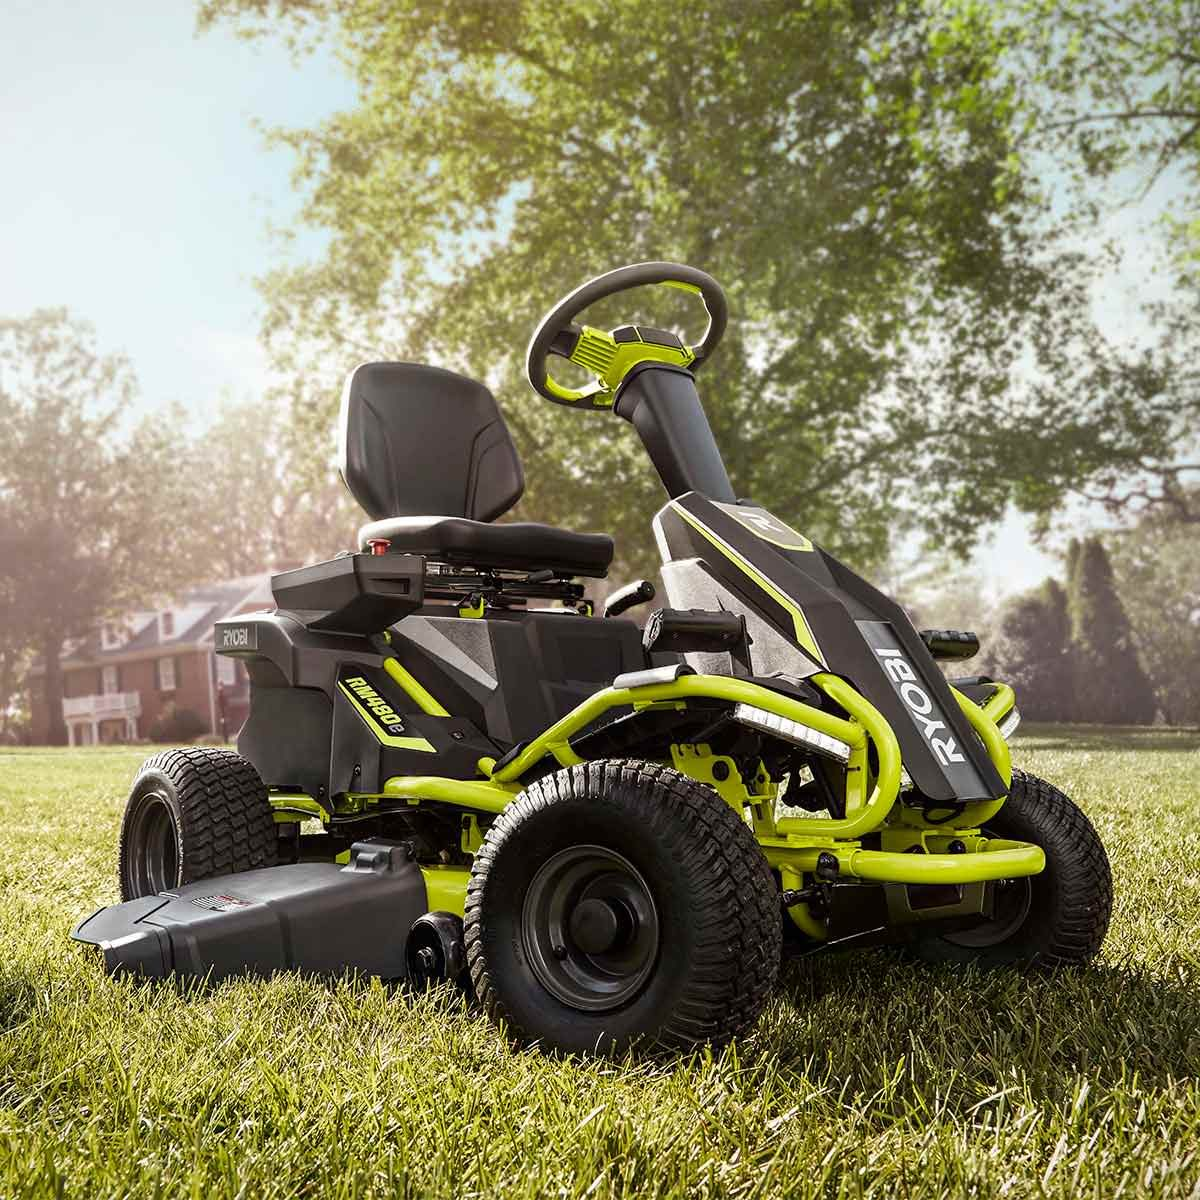 ryobi rm480e riding lawnmower — the family handyman